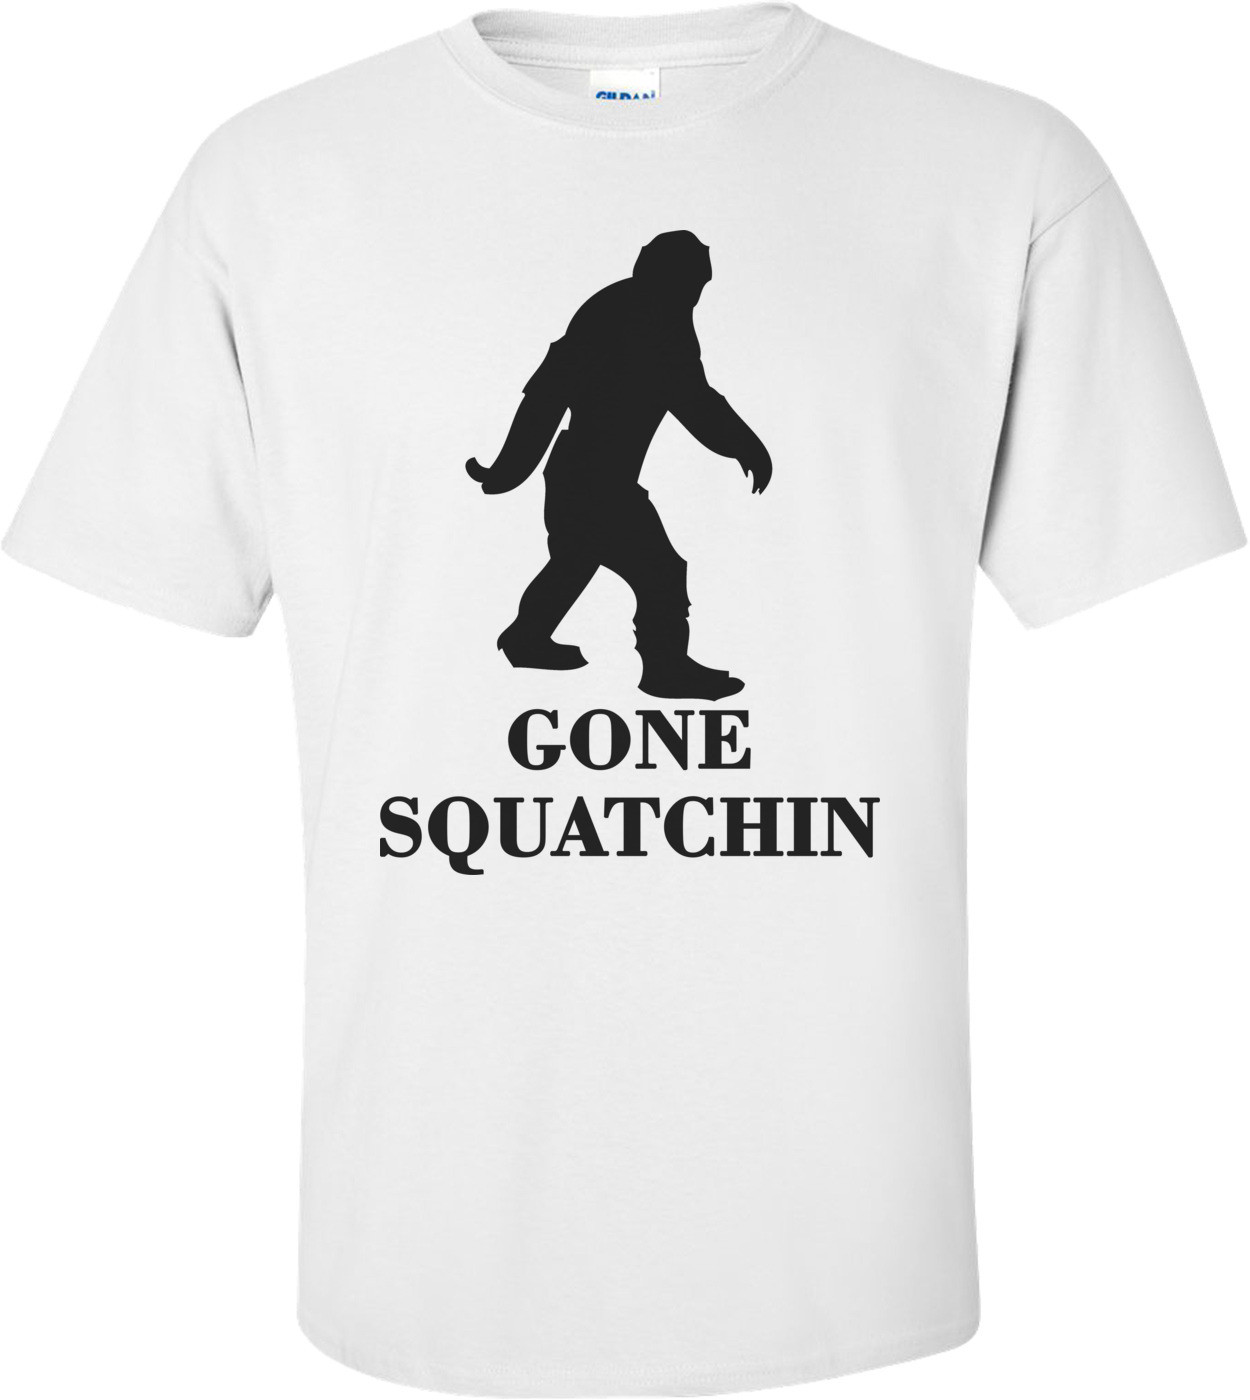 Gone Squatching, Finding Bigfoot, Squatch. Funny T-shirt